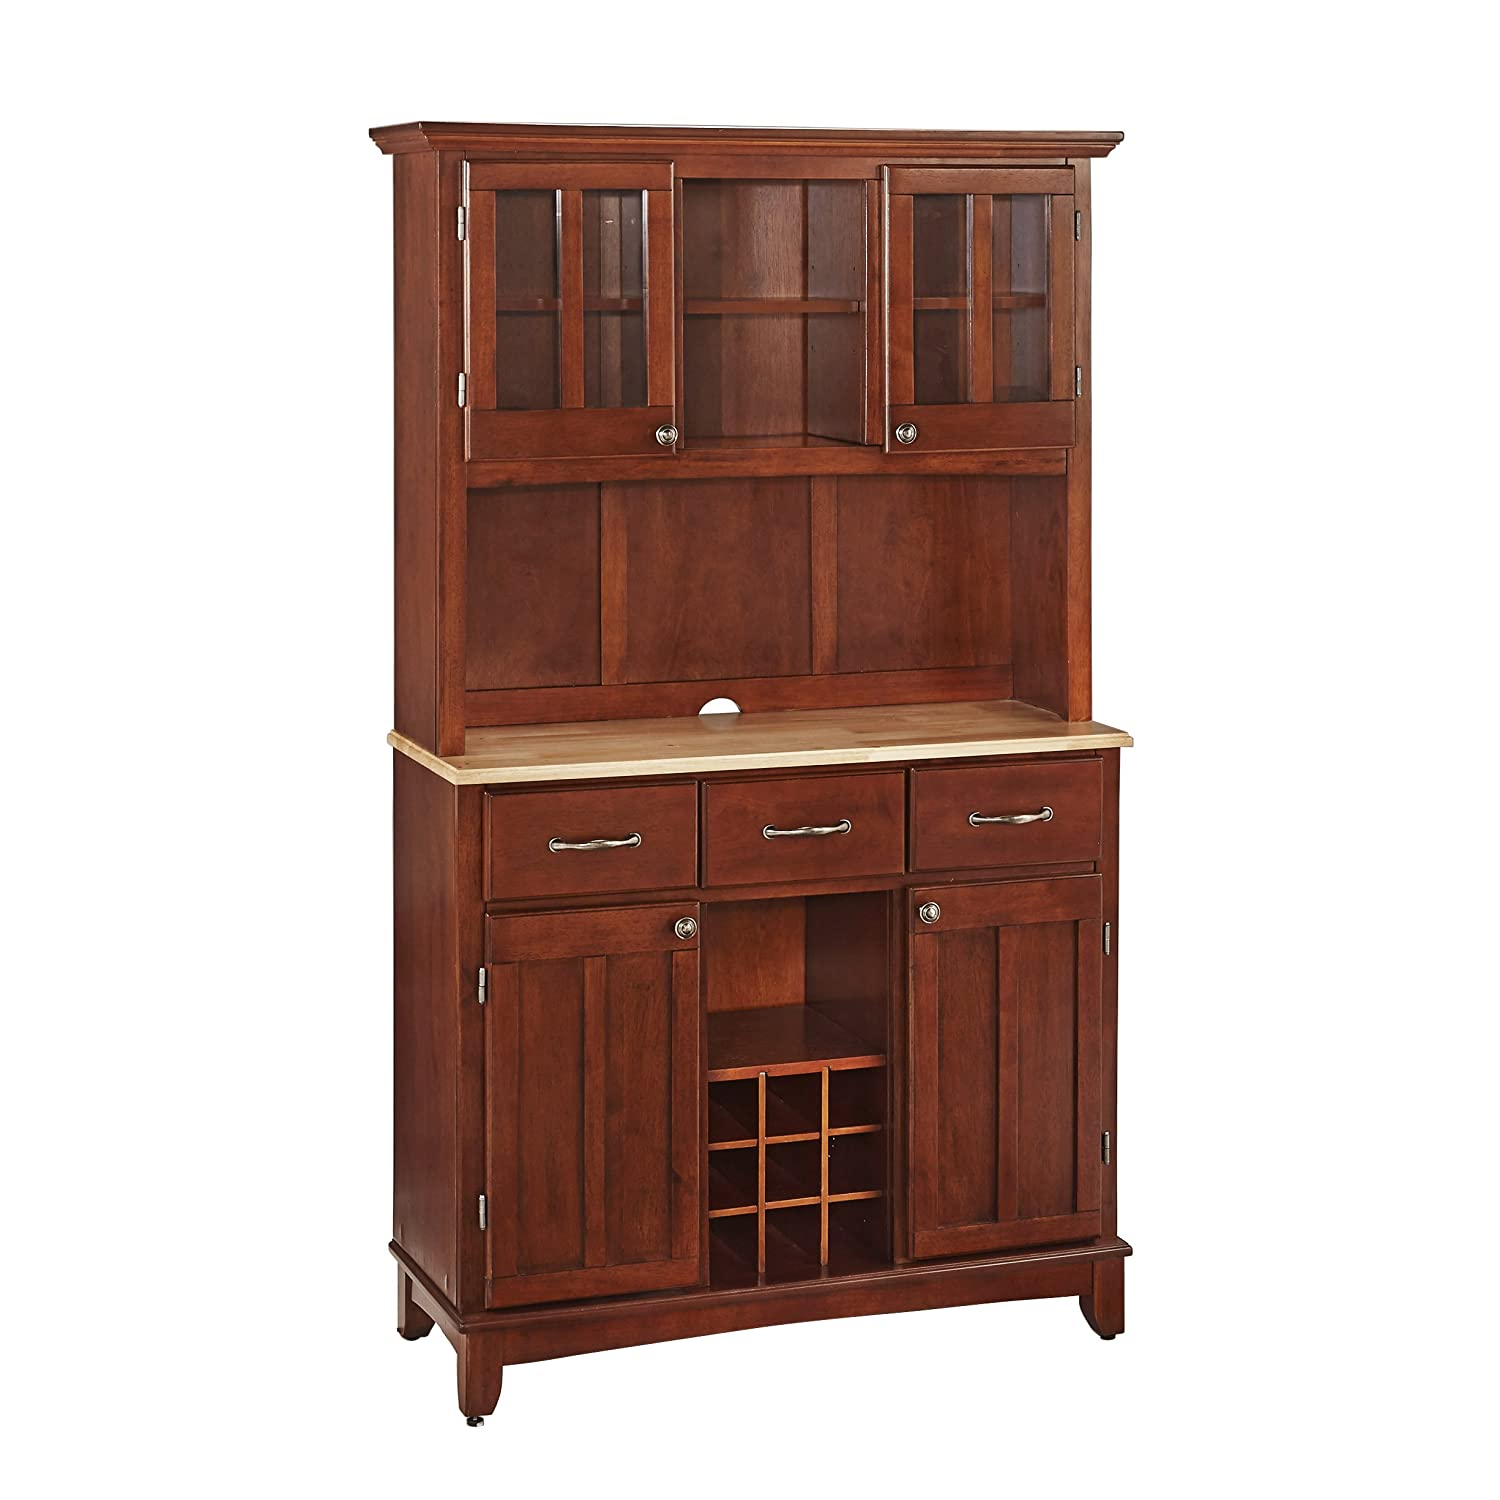 home styles 5100 0071 72 buffet of buffets natural wood with hutch cherry finish 41 34 inch - Dining Room Hutch And Buffet